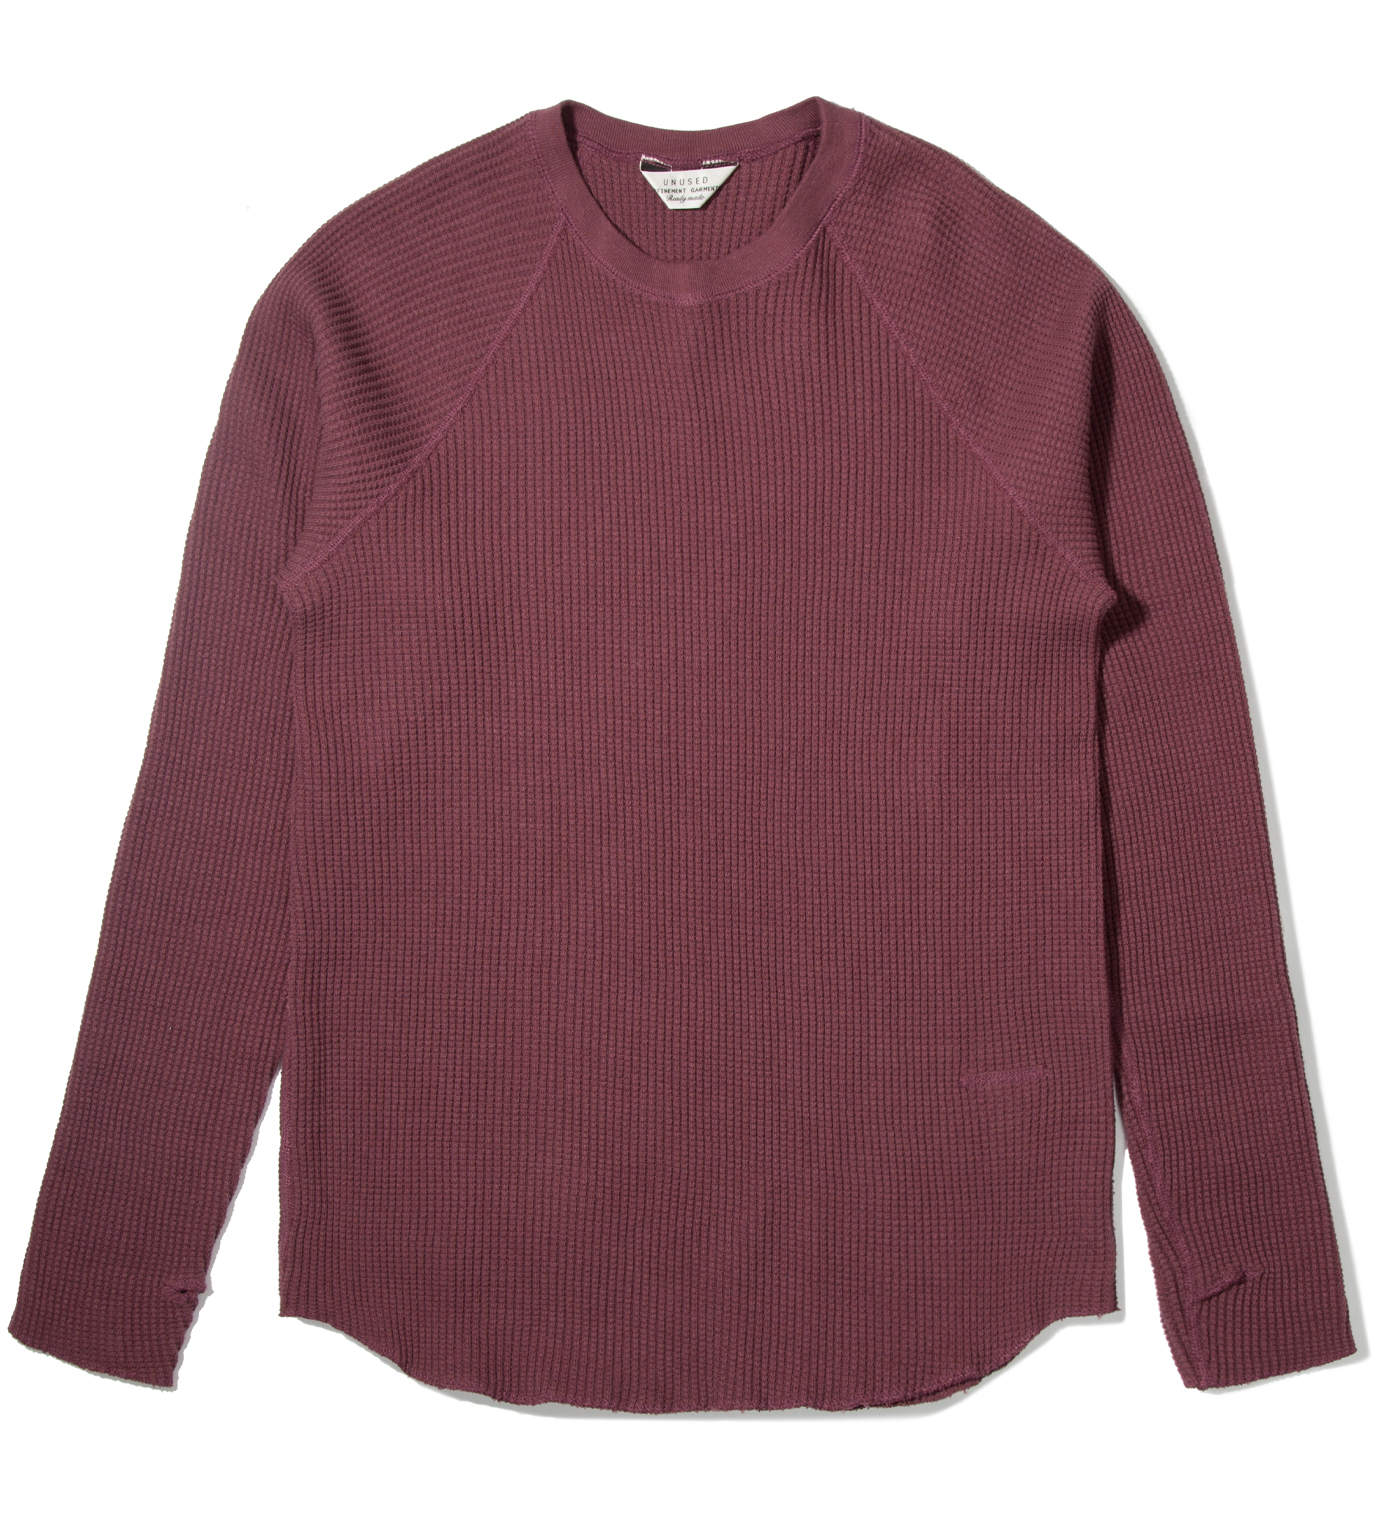 UNUSED Burgundy Thermal Long Sleeve T-Shirt